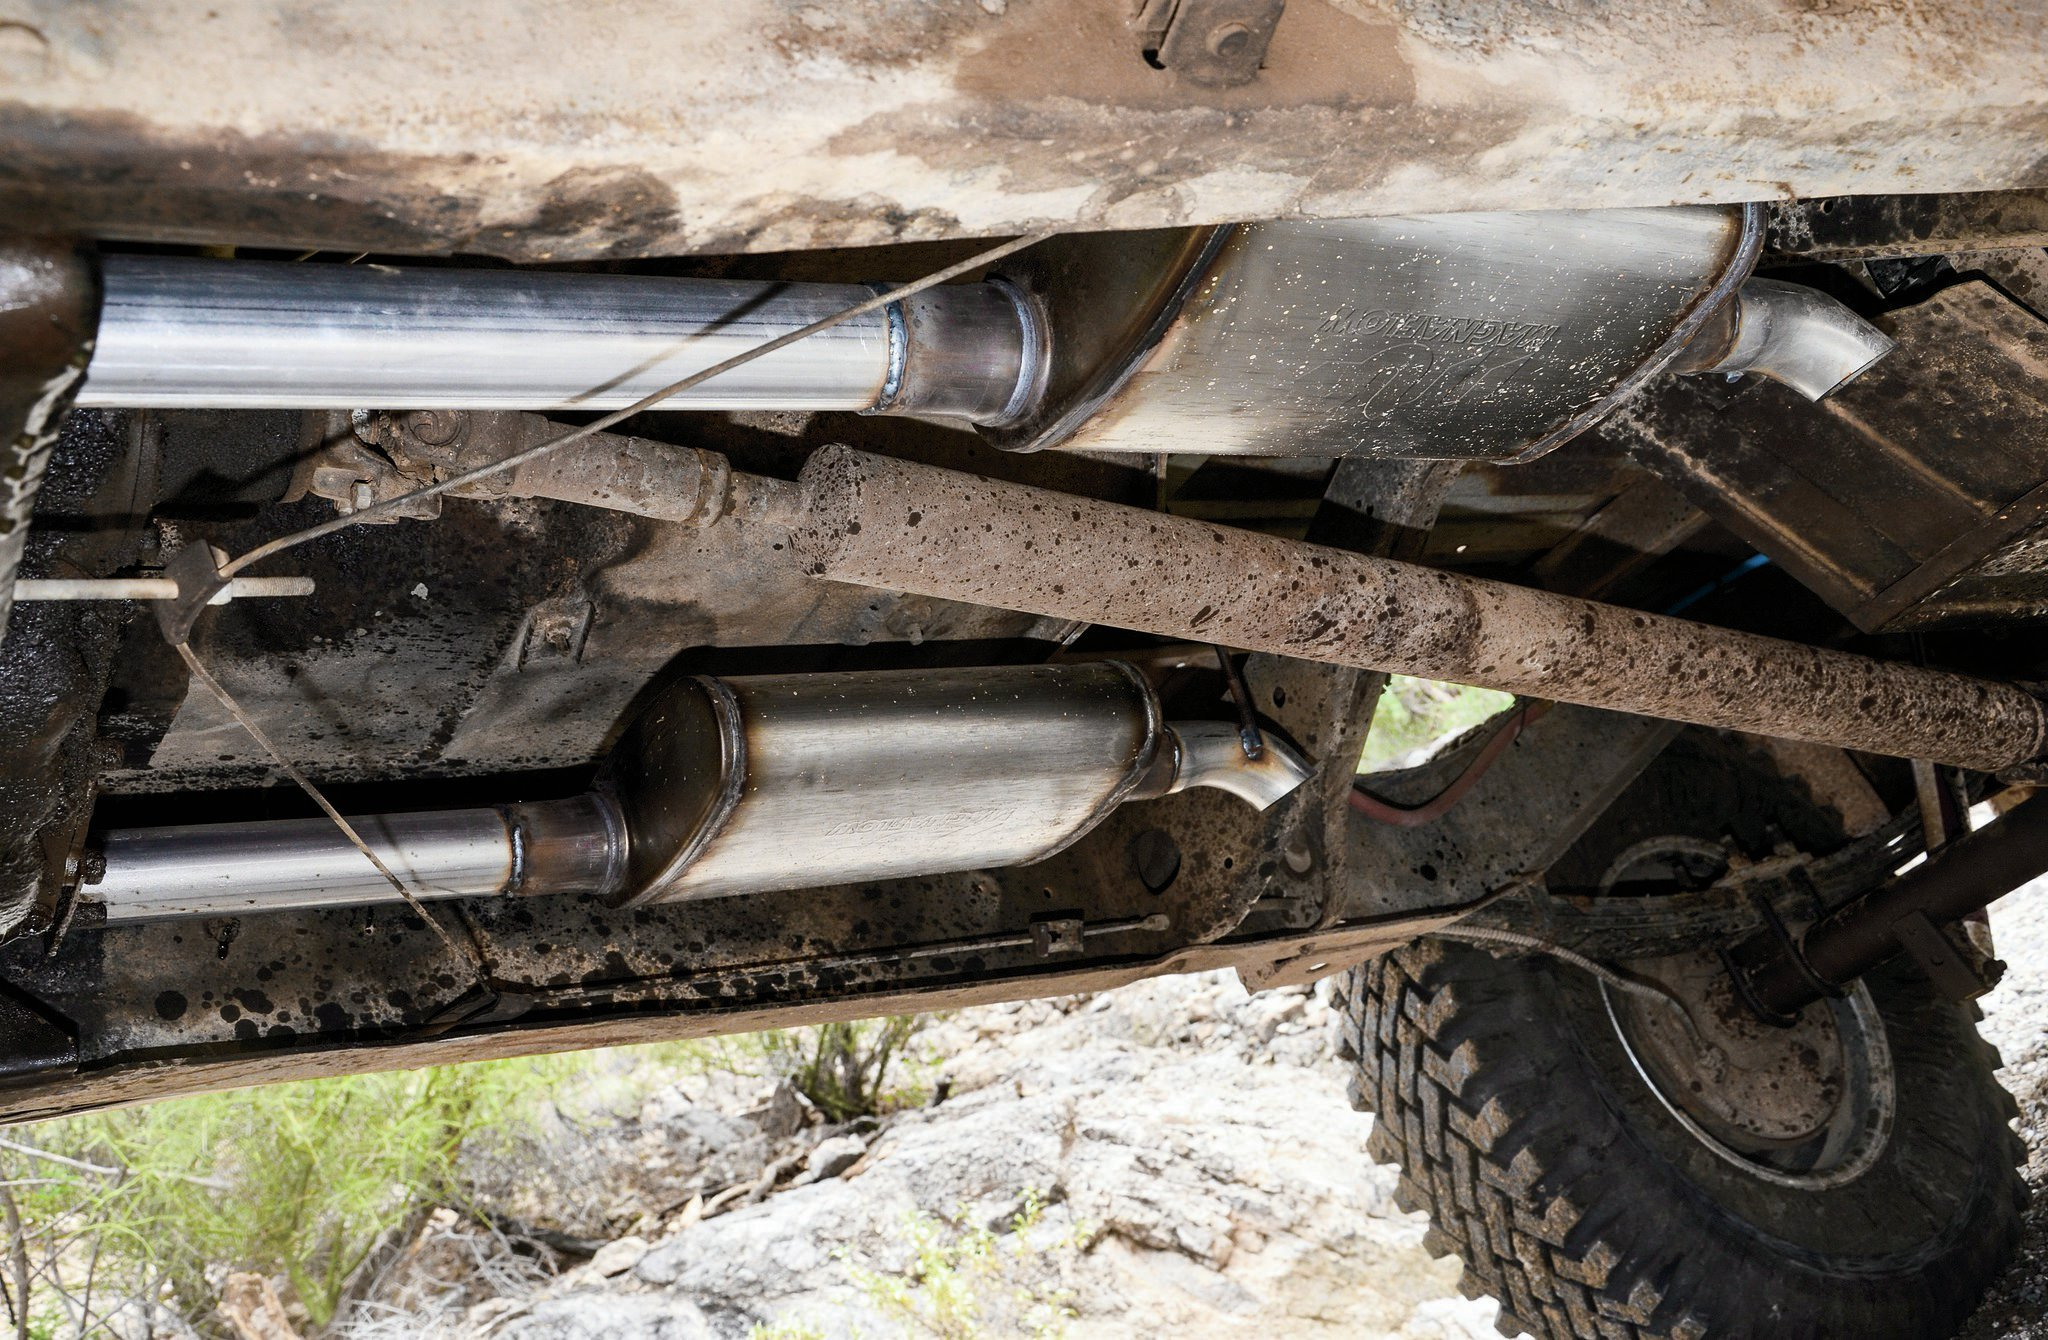 So, we know we are going to catch flack from all the hot-rod Jeep folks about running exhaust manifolds on a performance build, but hey, we also went with a milder cam 'cause this thing is a truck with a truck transmission in it. The fact is, we just don't want to deal with headers on this truck, but we have always wanted to run dual exhaust, so that's just what we did. To save ourselves some time and headache, we took the pig truck down to Big Jim's Custom Exhaust. Once there, Ted hooked us up with a sexy system that isn't too loud or too quiet—just what we wanted. Next time, we'll toss the Pig back on AIRAID's dyno and see what she can do.